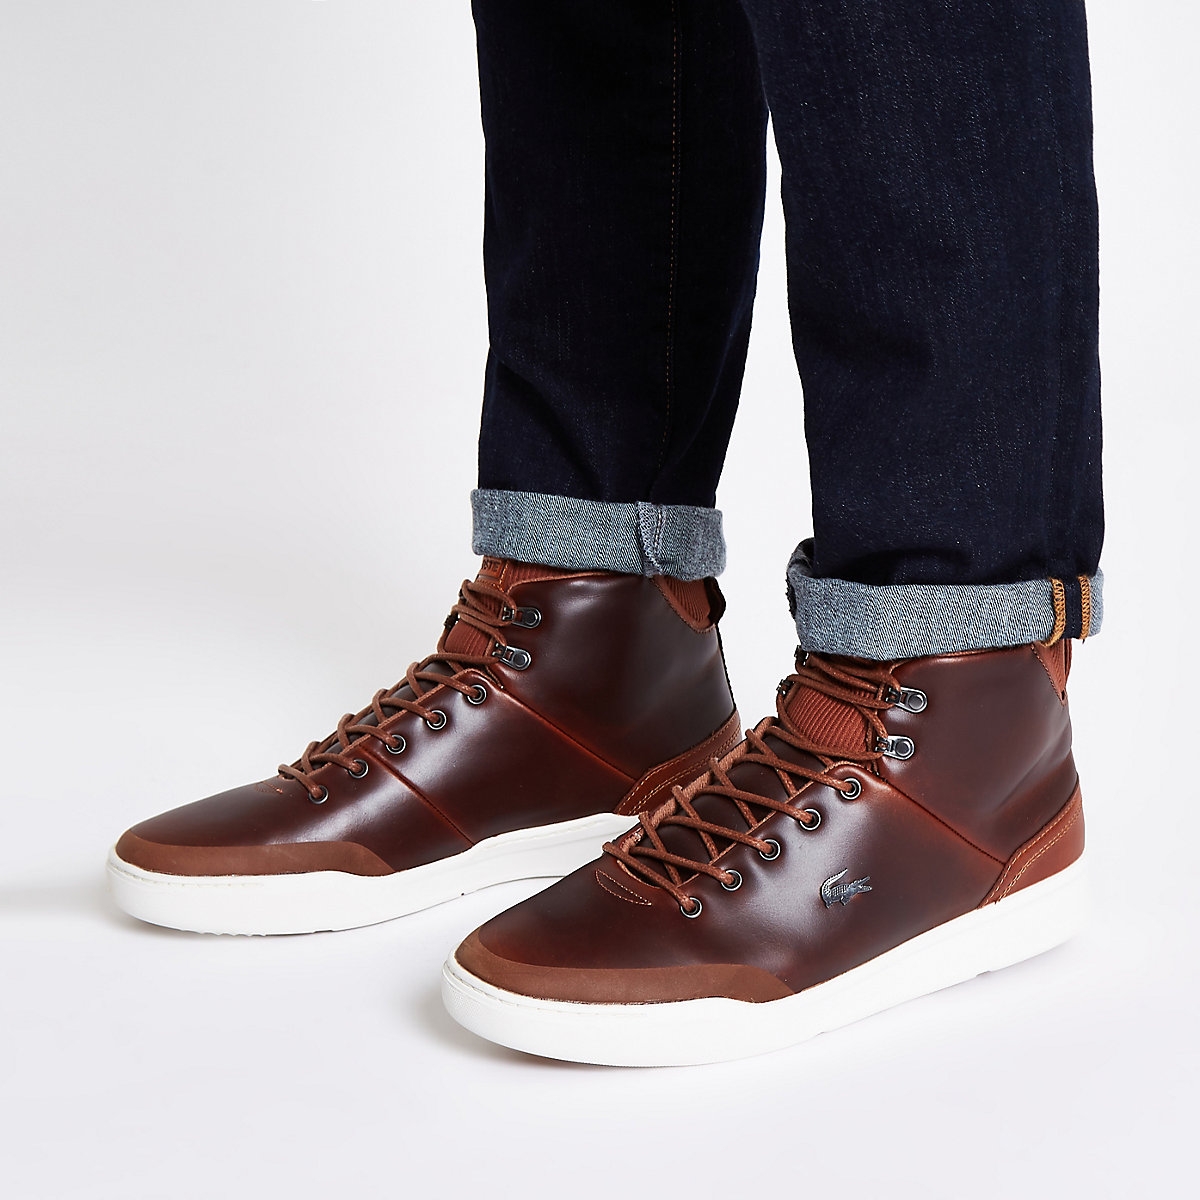 Lacoste brown leather hi top trainers - Trainers - Shoes   Boots - men e3b29e06a78